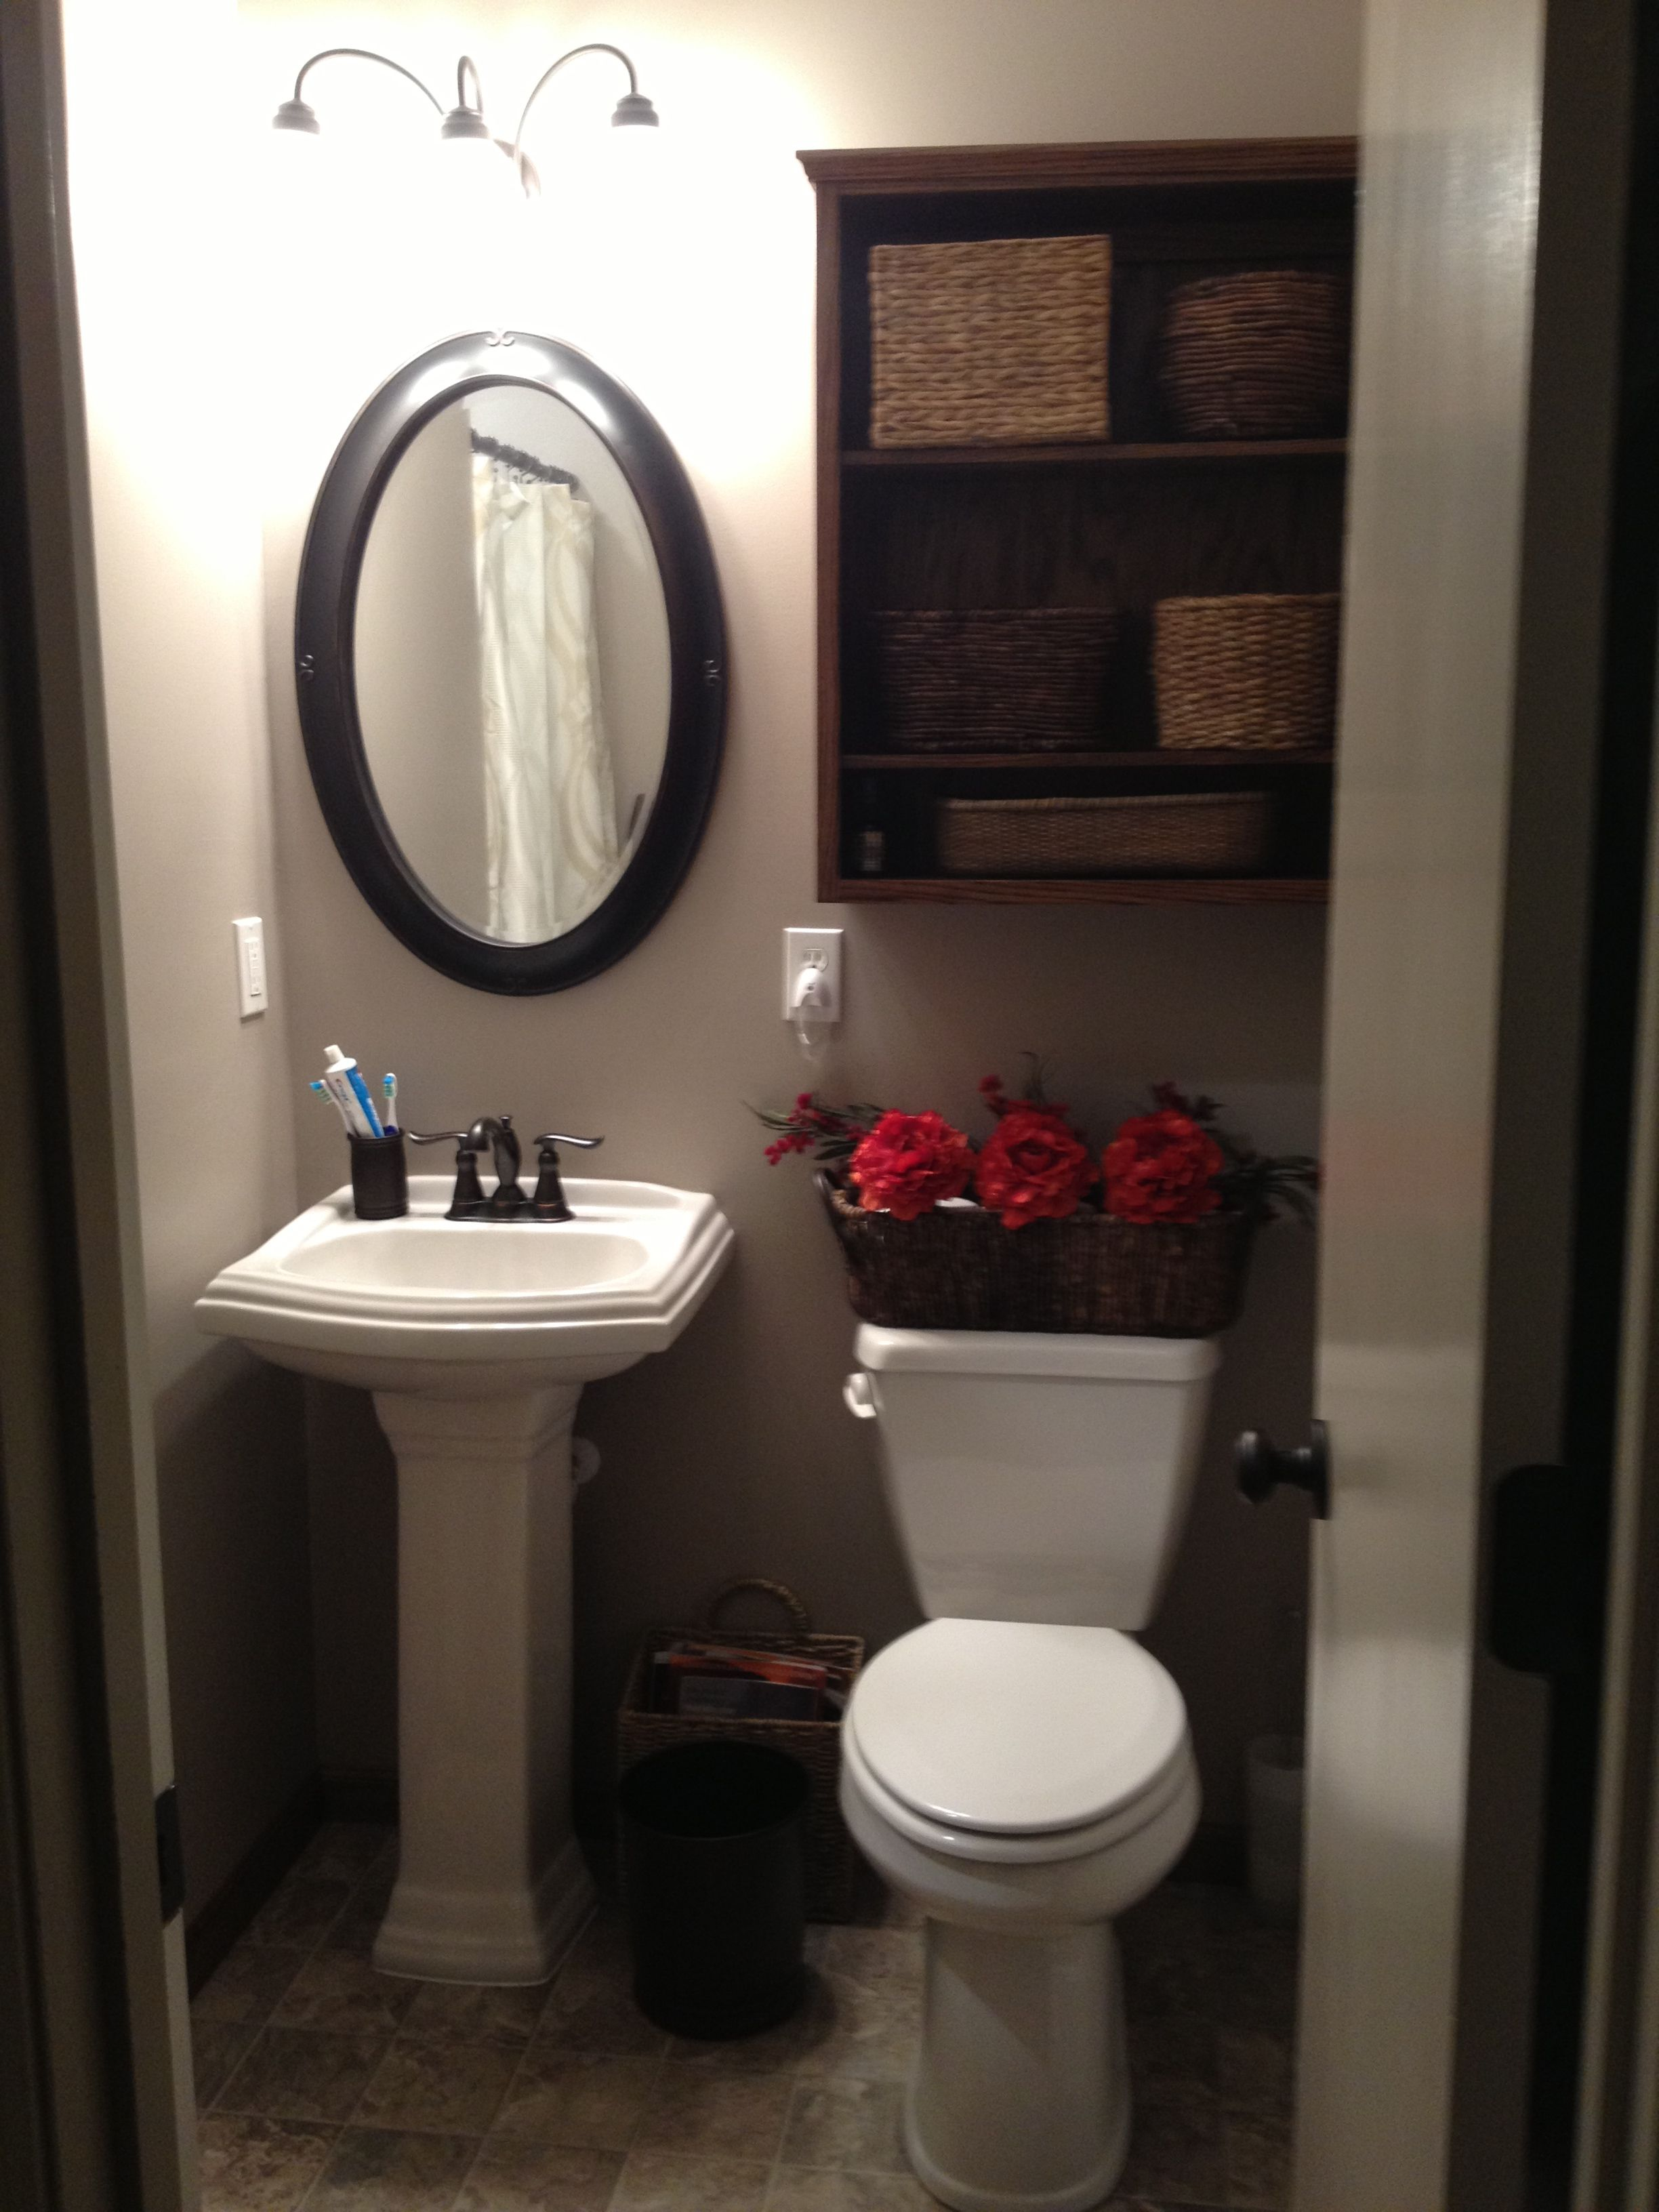 Attractive ... Pedestal Sink, Gerber Avalanche Toilet, Custom Shelf, Benjamin Moore  Sandlot Gray Paint, Mirror And Baskets From Hobby Lobby. Love This For A Half  Bath!